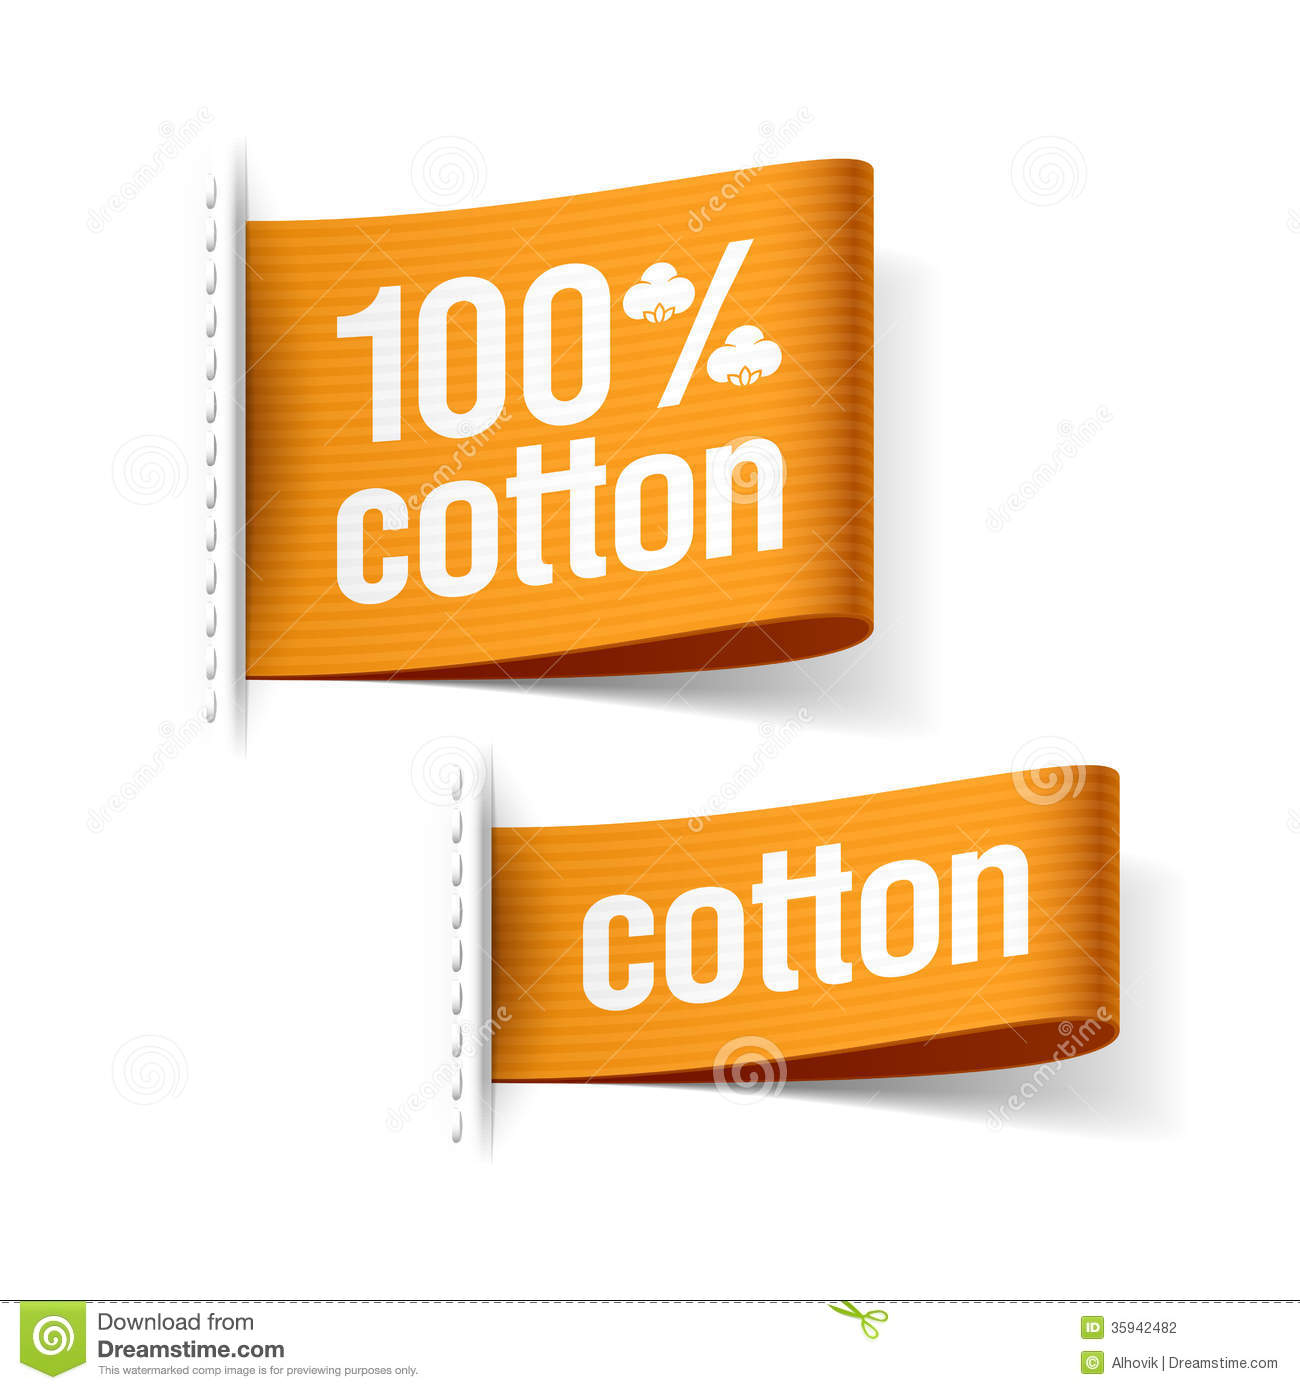 100 cotton product stock photo image of promotion With clothing product labels